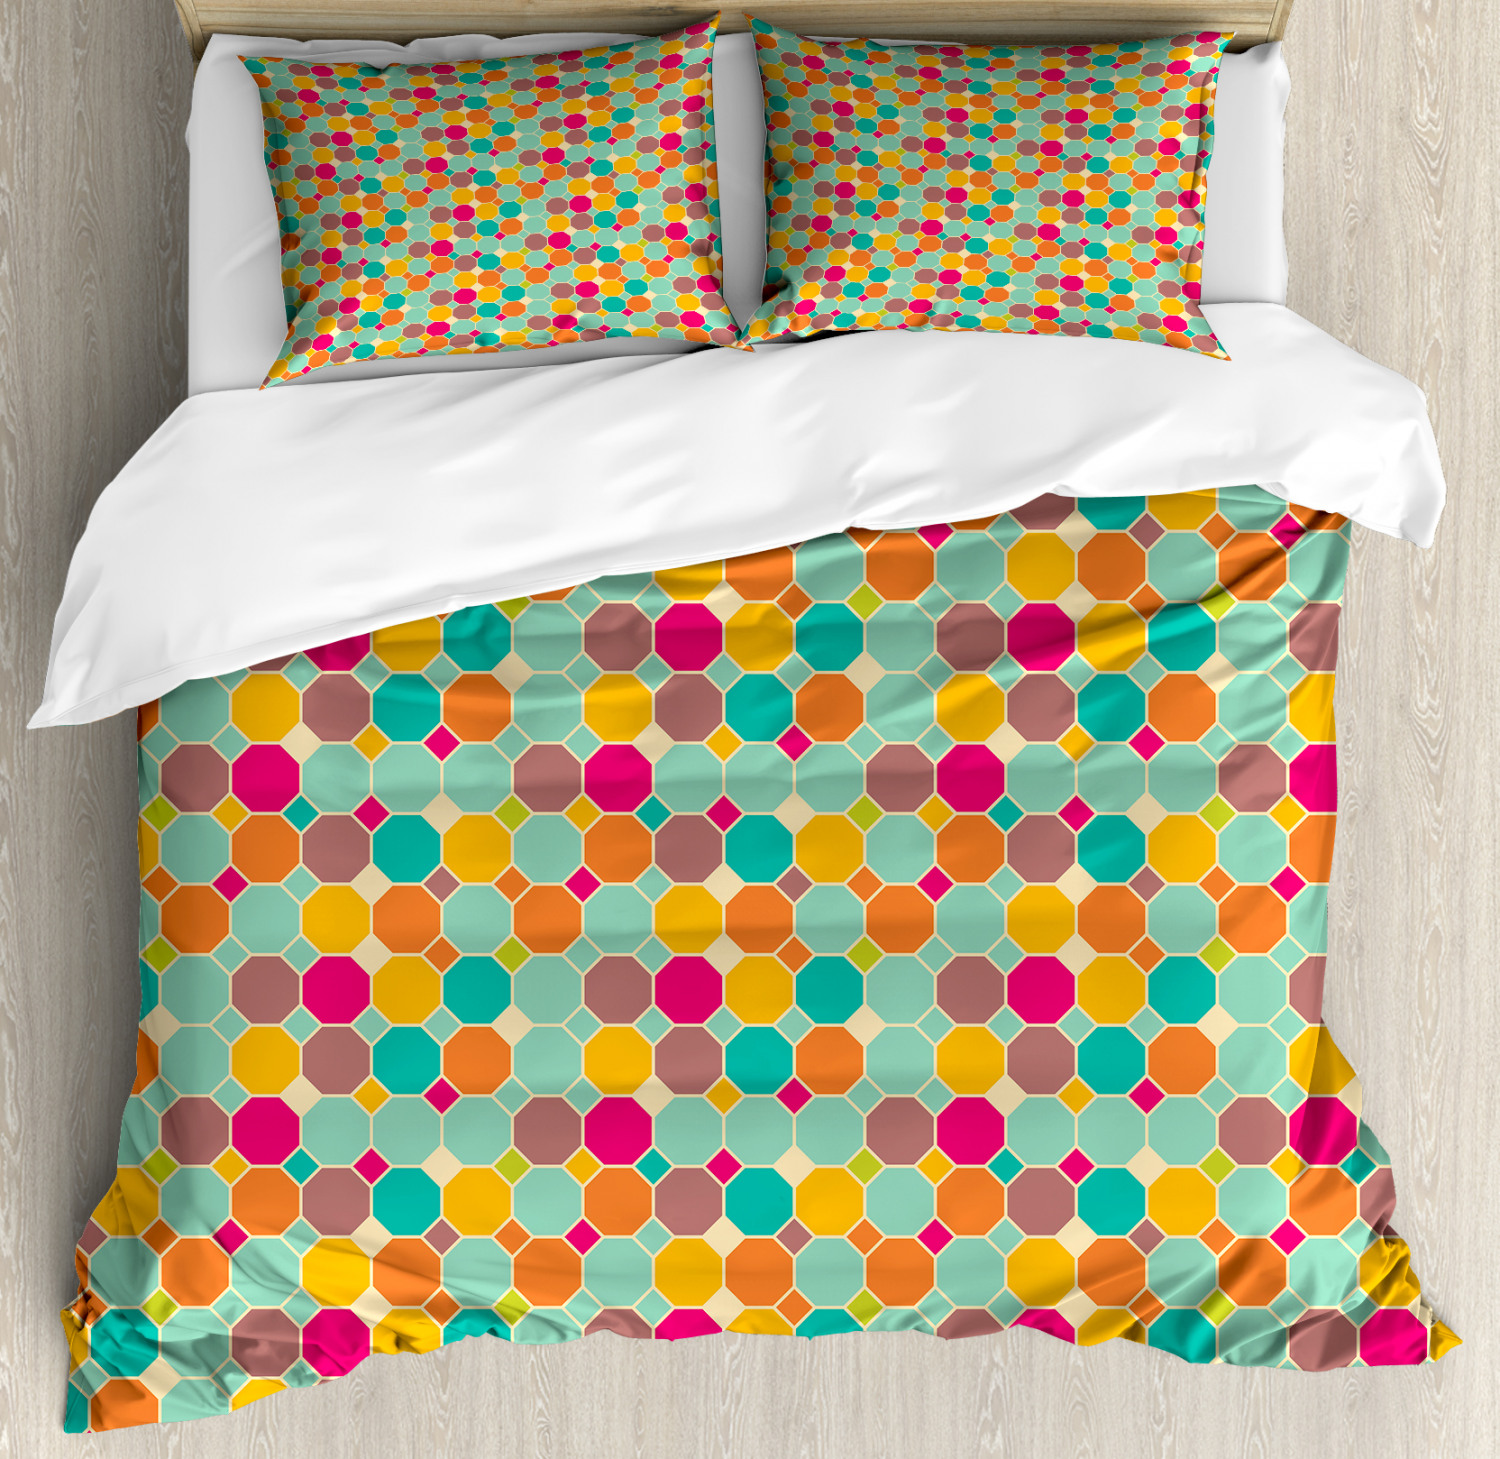 Geometric Duvet Cover Set with Pillow Shams Hexagons and Squares Print